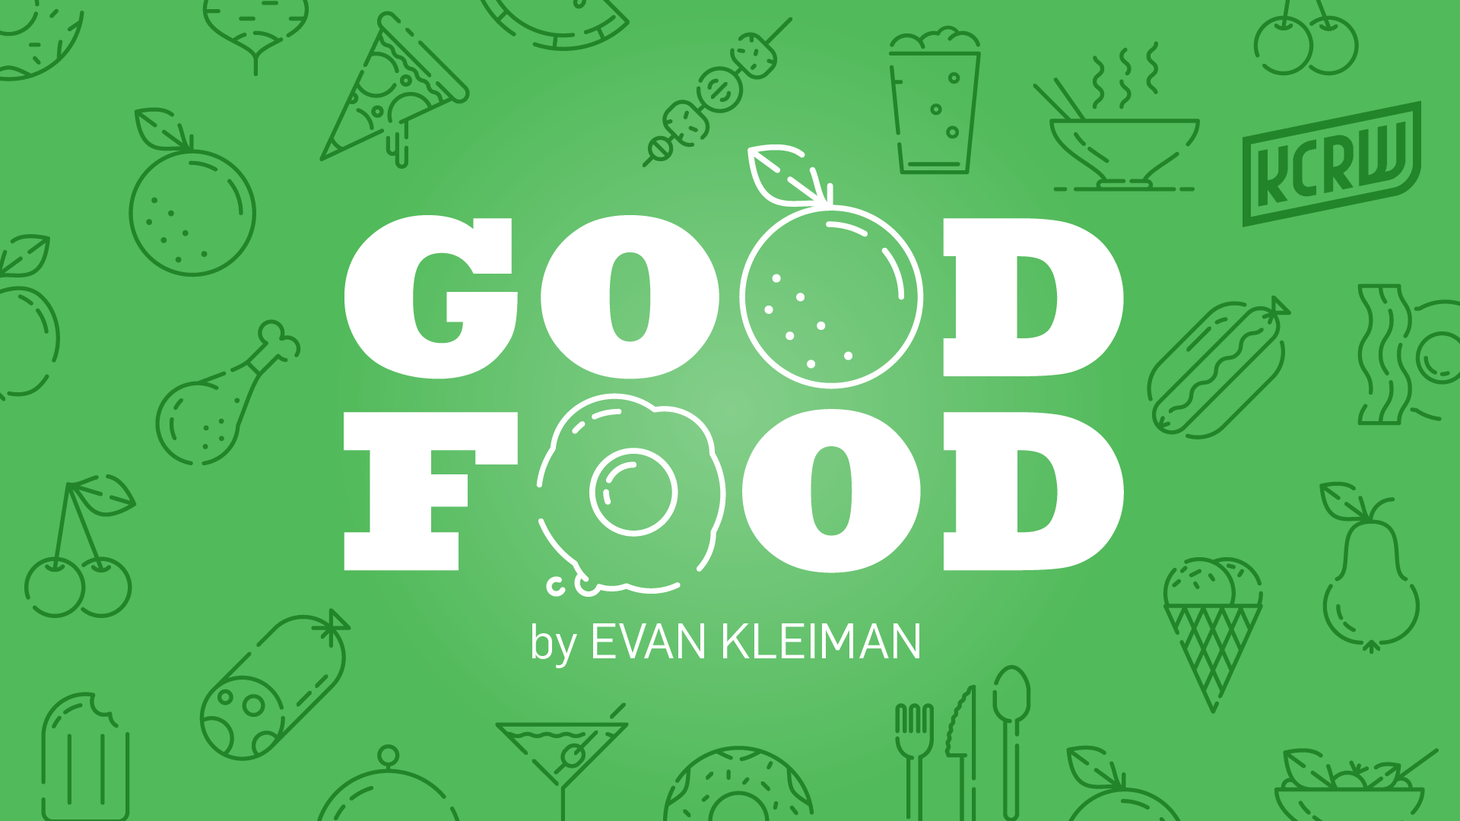 This week Evan Kleiman shares the secrets of less than perfect entertaining, followed by a look inside fine Italian fare from the heart of Sherman Oaks. In addition, Evan is joined by the Surreal Gourmet, takes a trip to the farmer's market and offers suggestions for the upcoming harvest holiday.